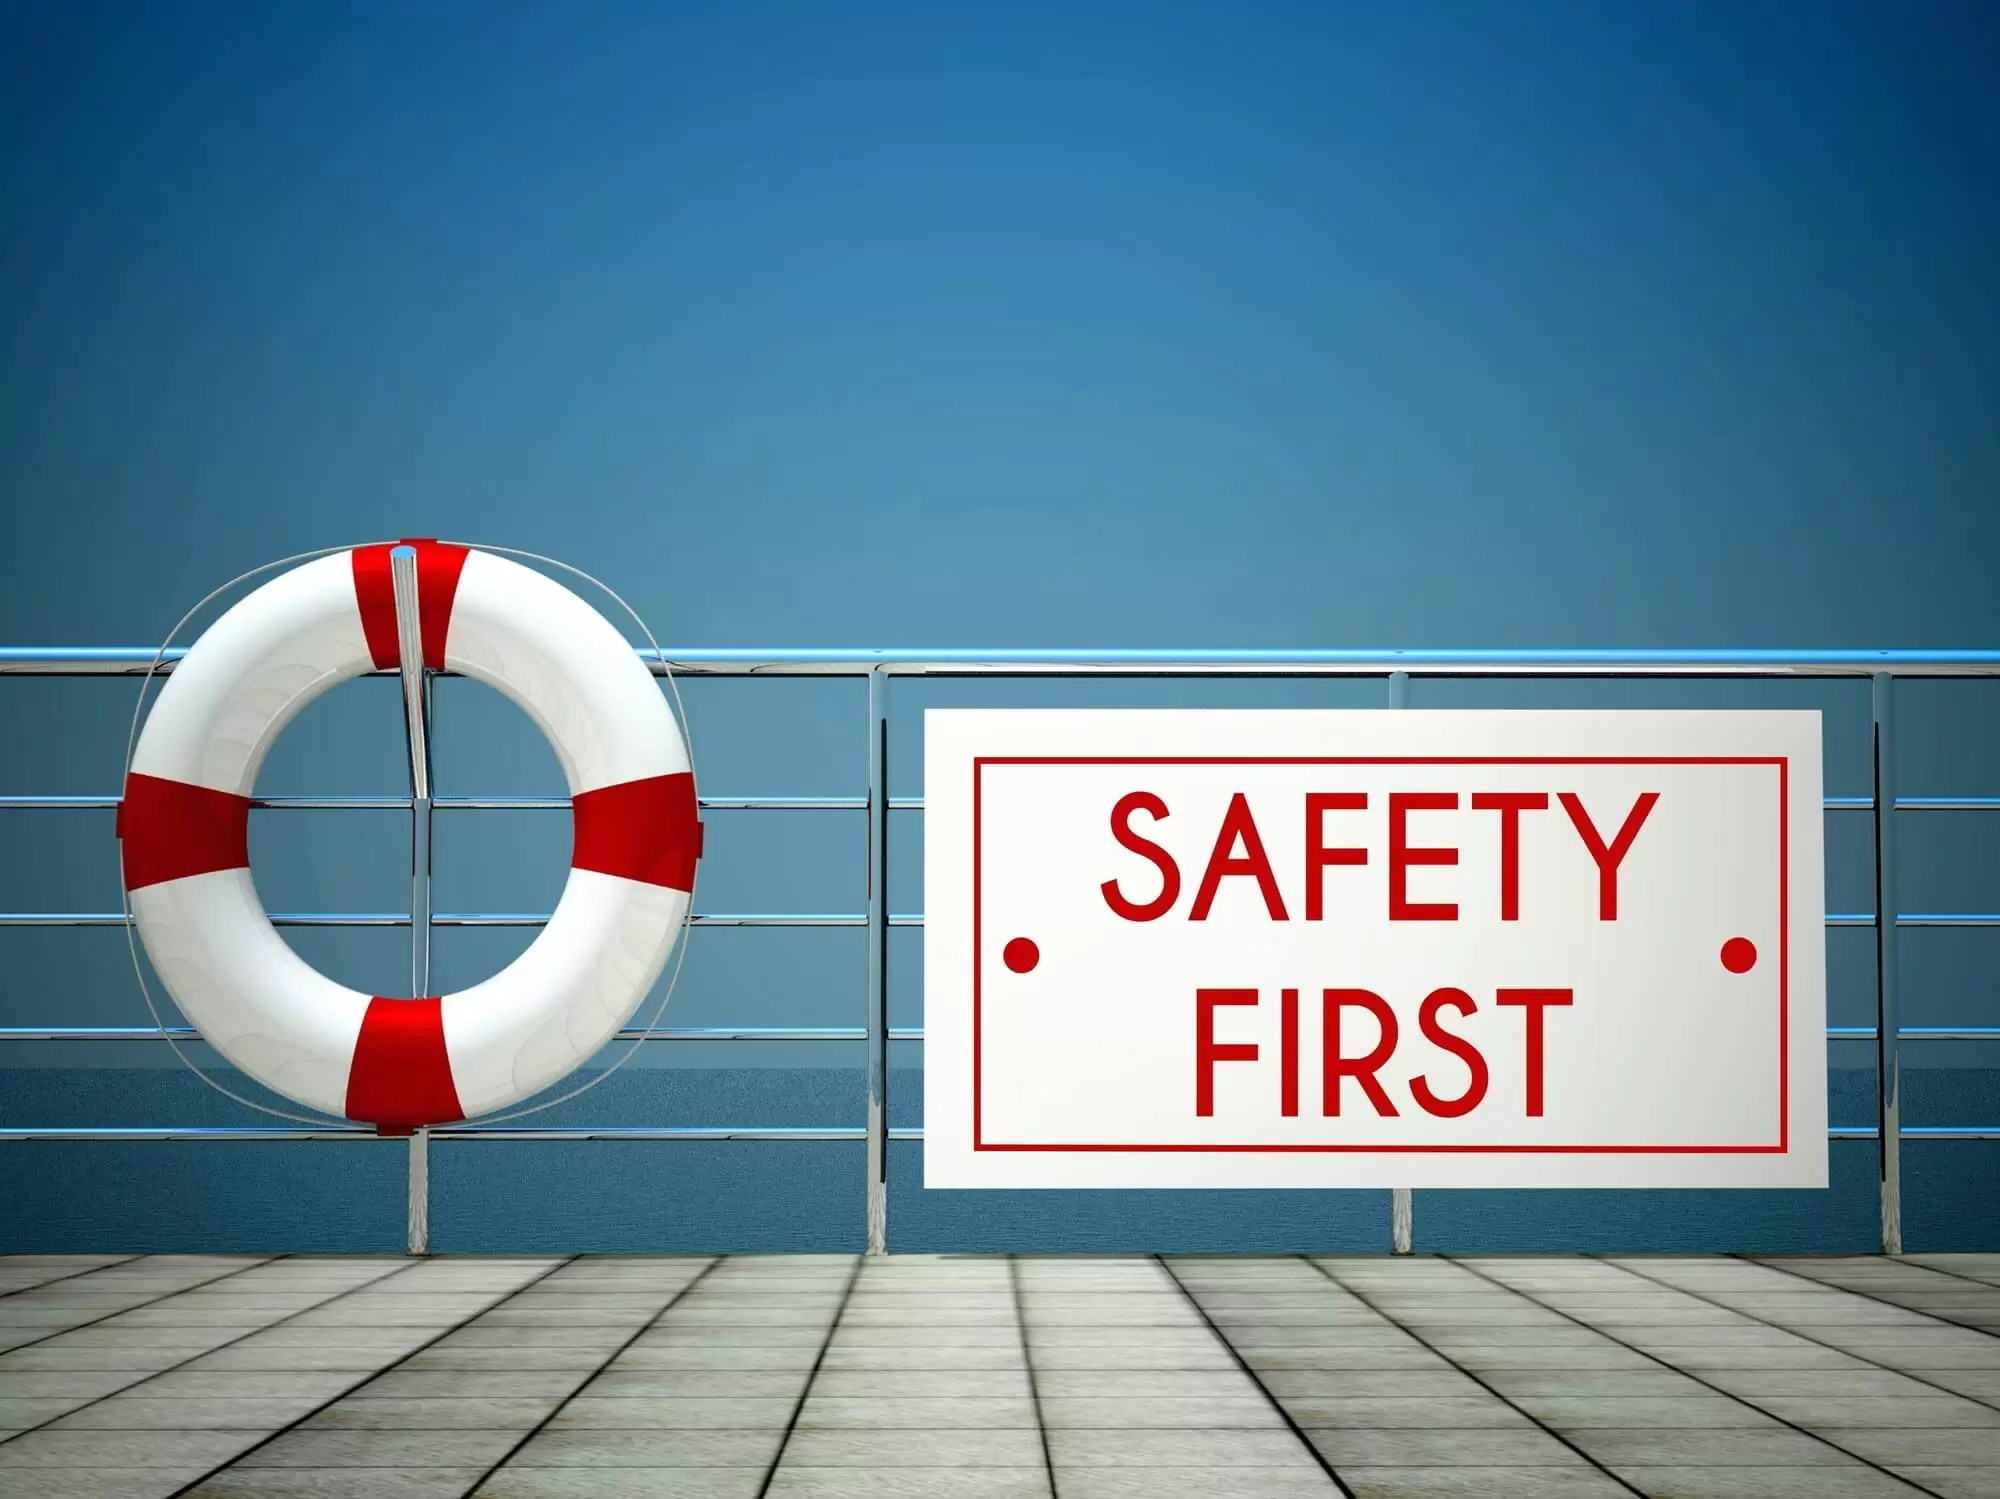 You are currently viewing 6 Swimming Pool Party and Spa Safety Tips